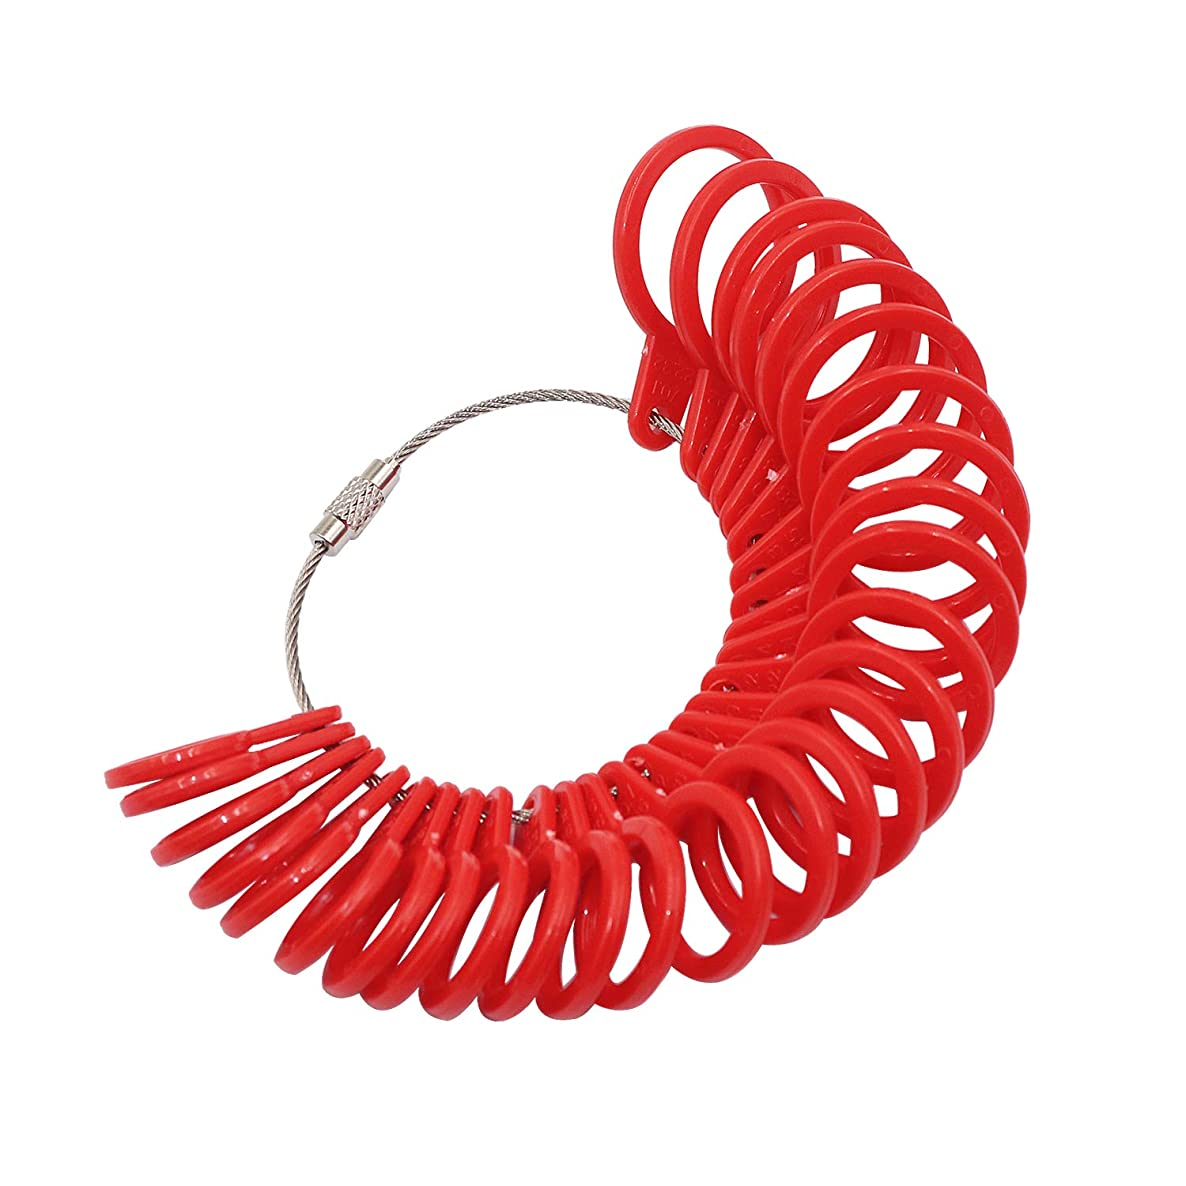 PHYHOO Jewelry Tool Ring Sizer Finger Sizing Measure Gauge Set Jeweler Jewelry Size Tool Ring Loop (red)